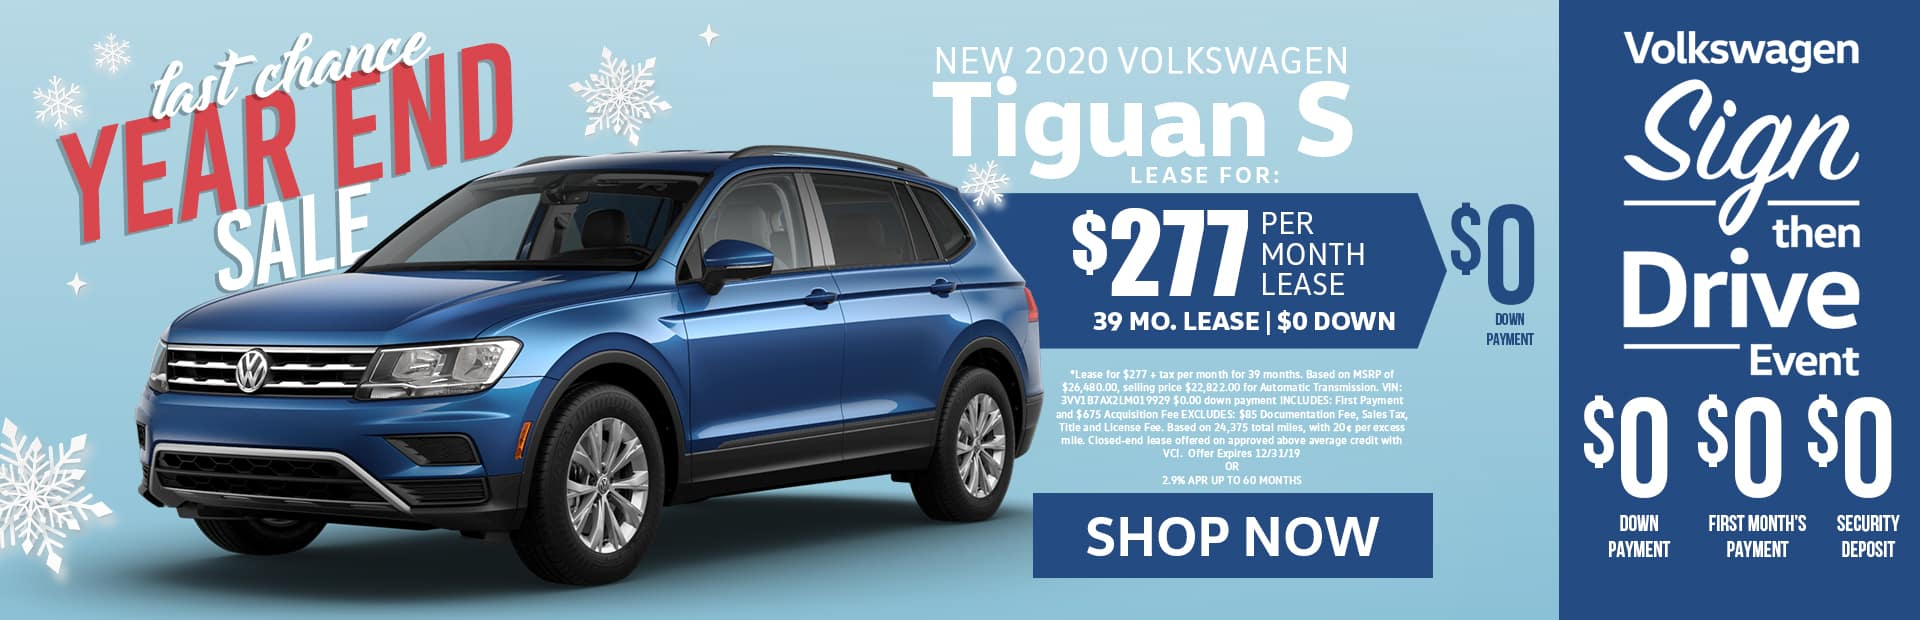 tiguan S lease special